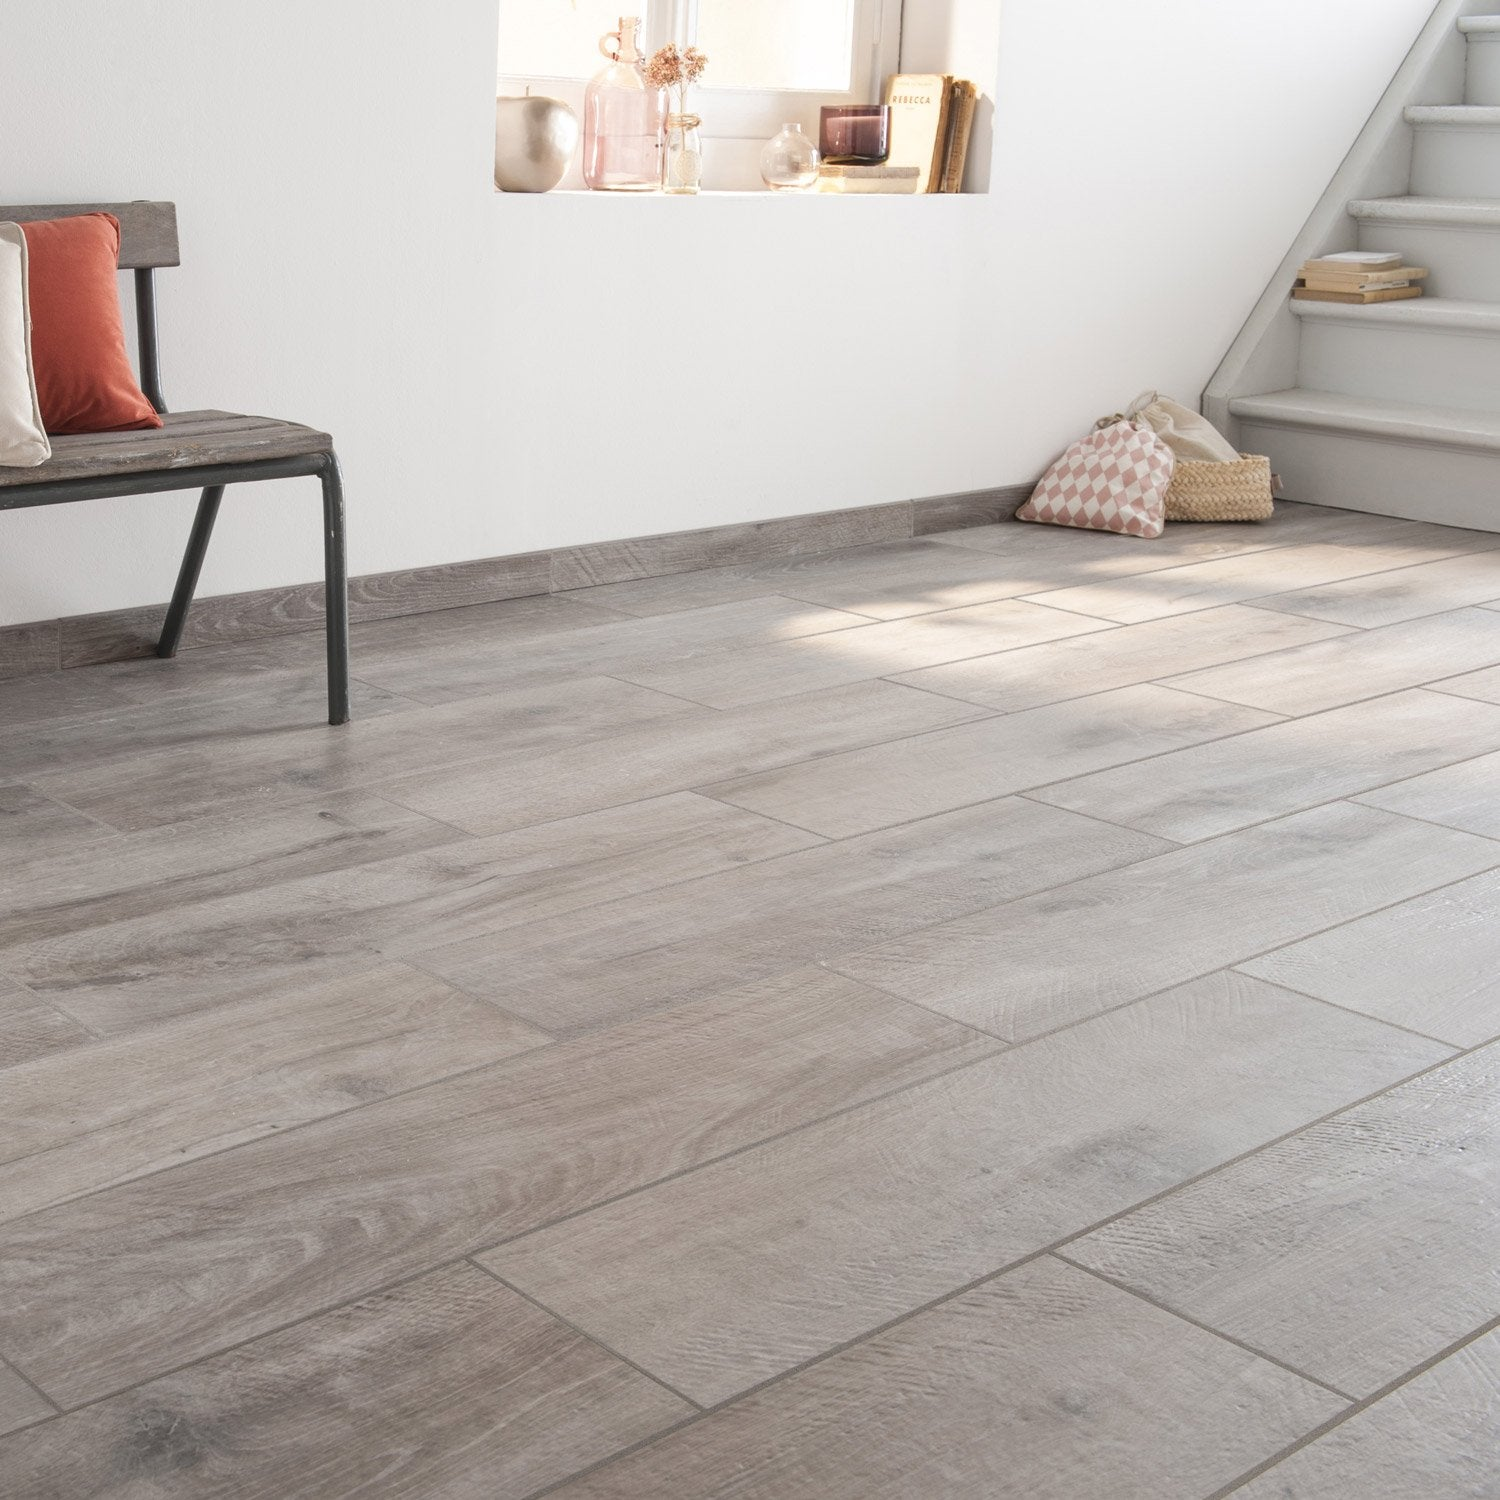 Carrelage effet parquet gris 28 images du carrelage for Carrelage le roy merlin